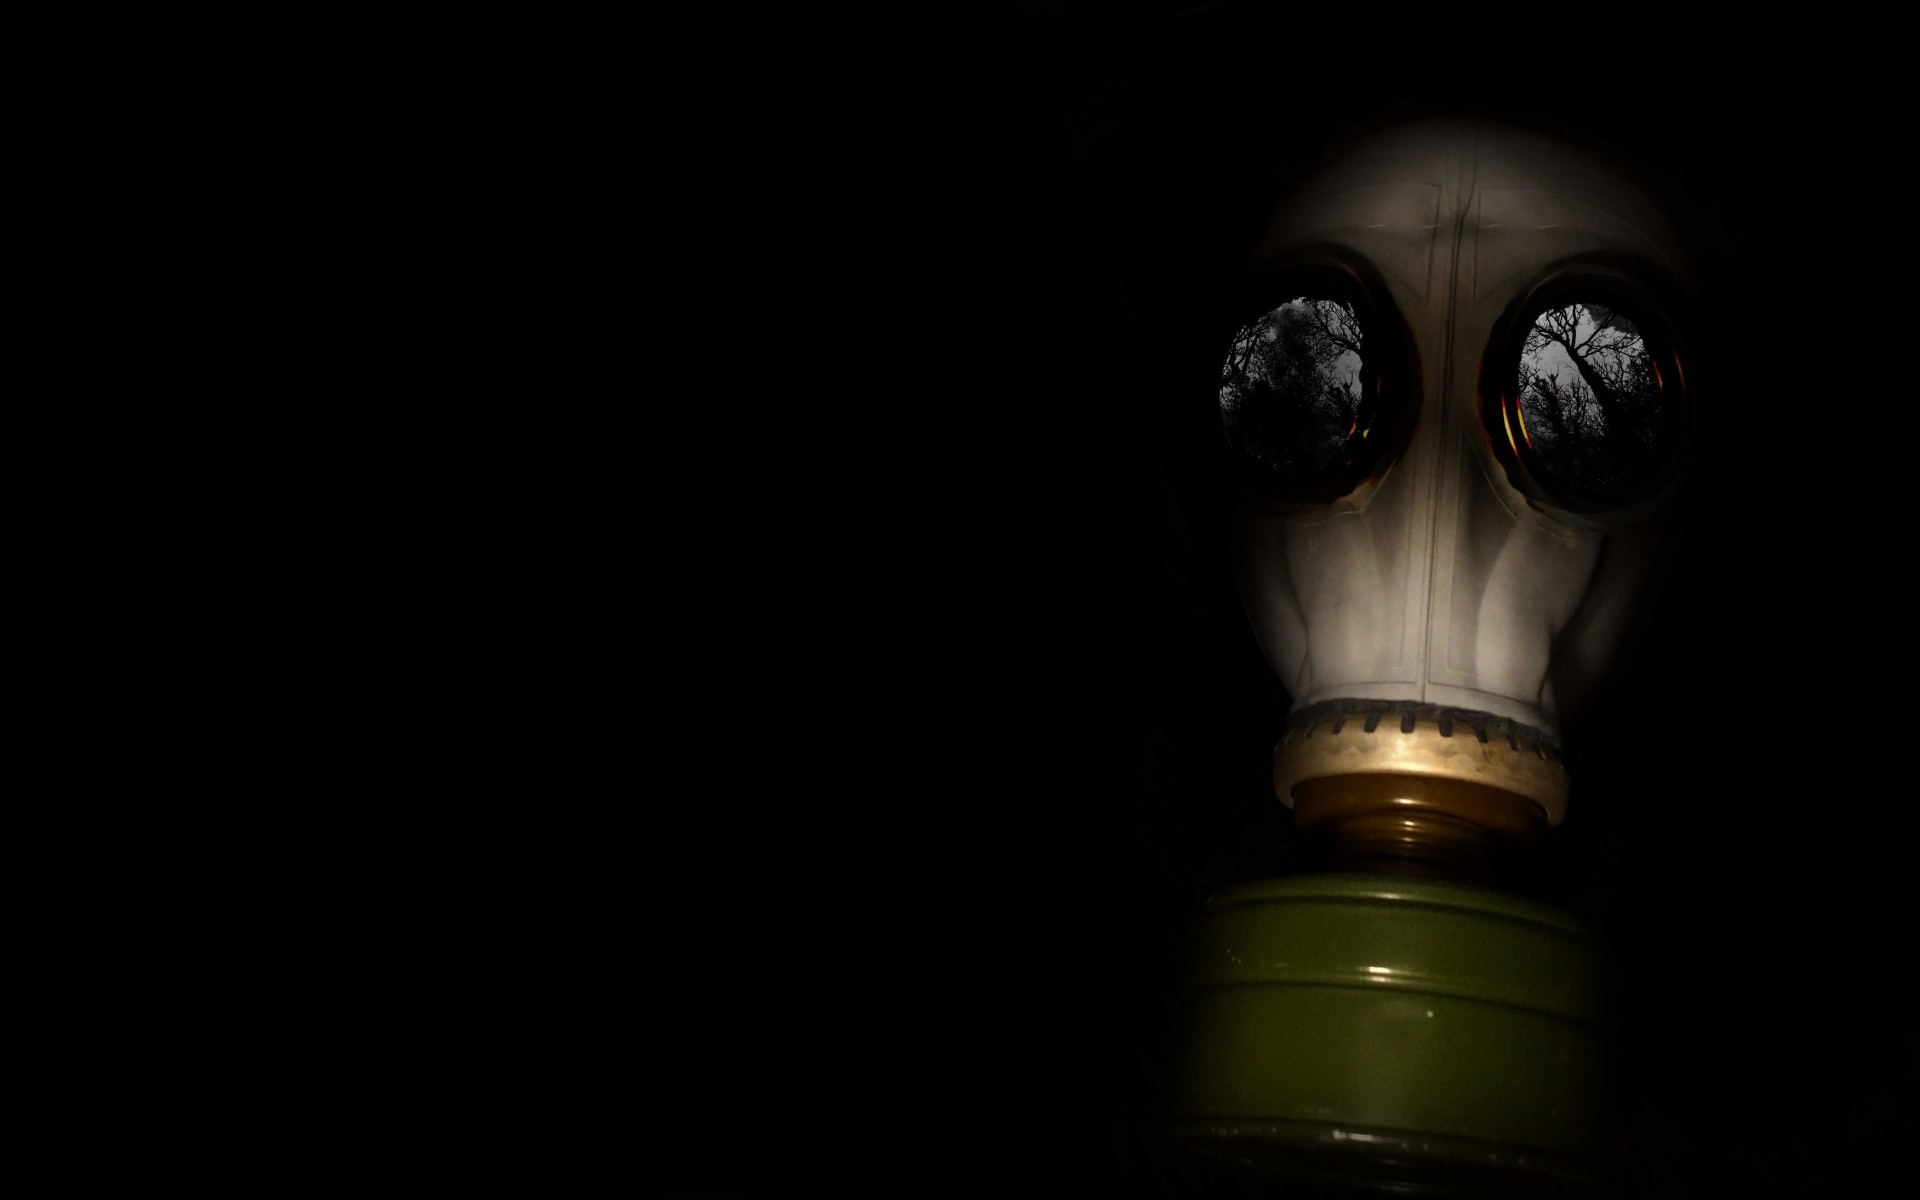 WWII Gas Mask Wallpaper for Desktop 1920x1200